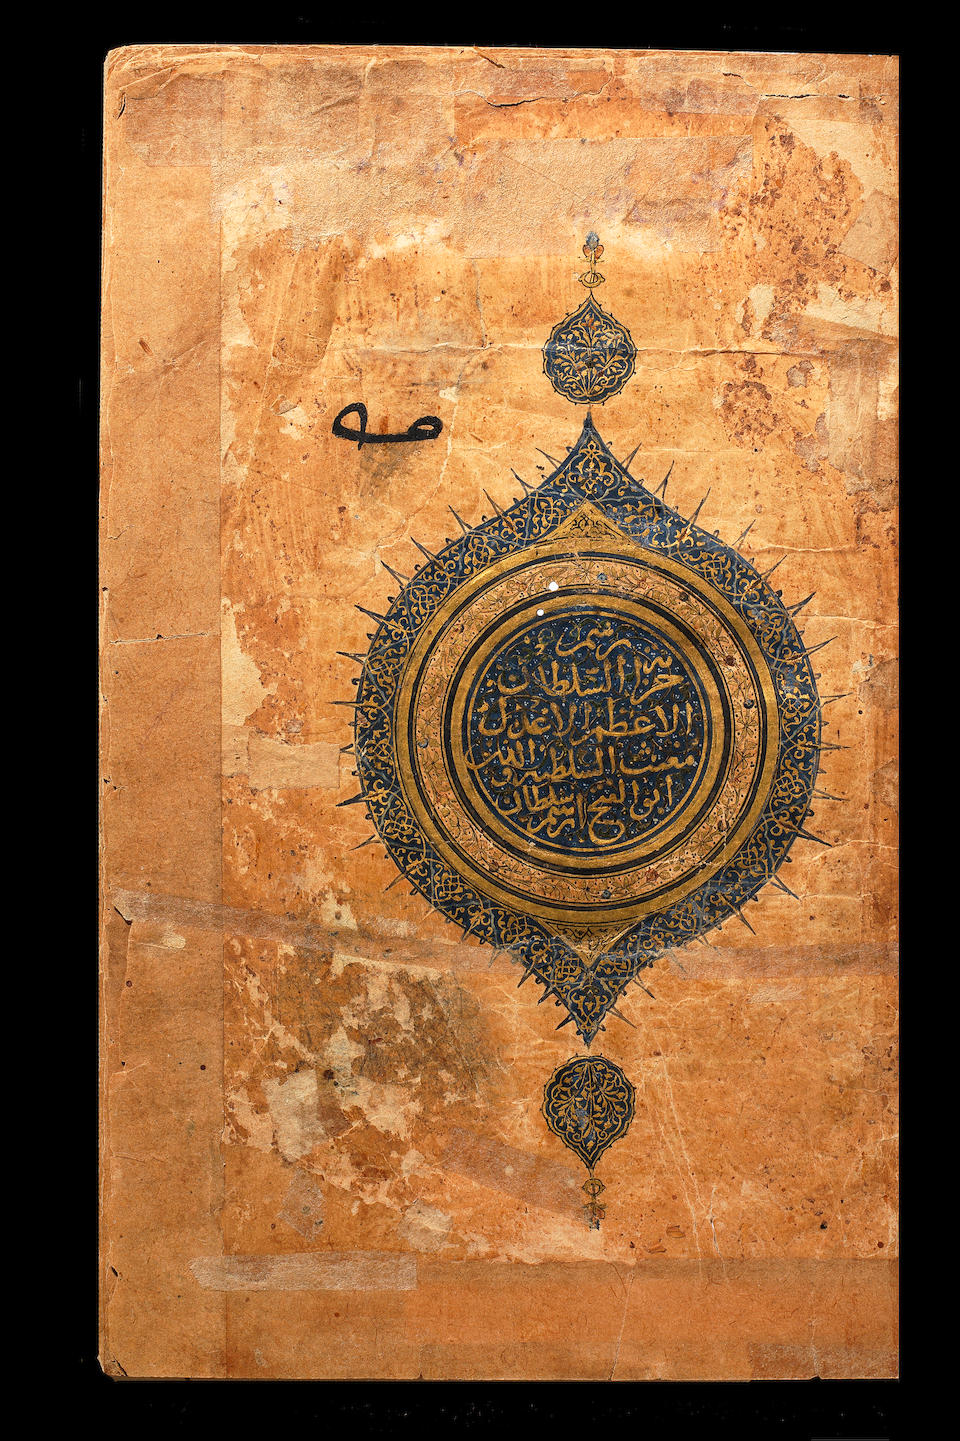 An early illuminated anthology of poetry (divan) by Ibn Yamin (Amir Fakhr-ad-Din Mahmud ibn Yamin al-Faryumadi Tughra'i, d. 1344), commissioned for the library of the Timurid ruler, Ibrahim Sultan, bearing seal impressions of his father Shah Rukh bin Timur Transoxiana, probably Samarkand or Fars, first half of the 15th Century